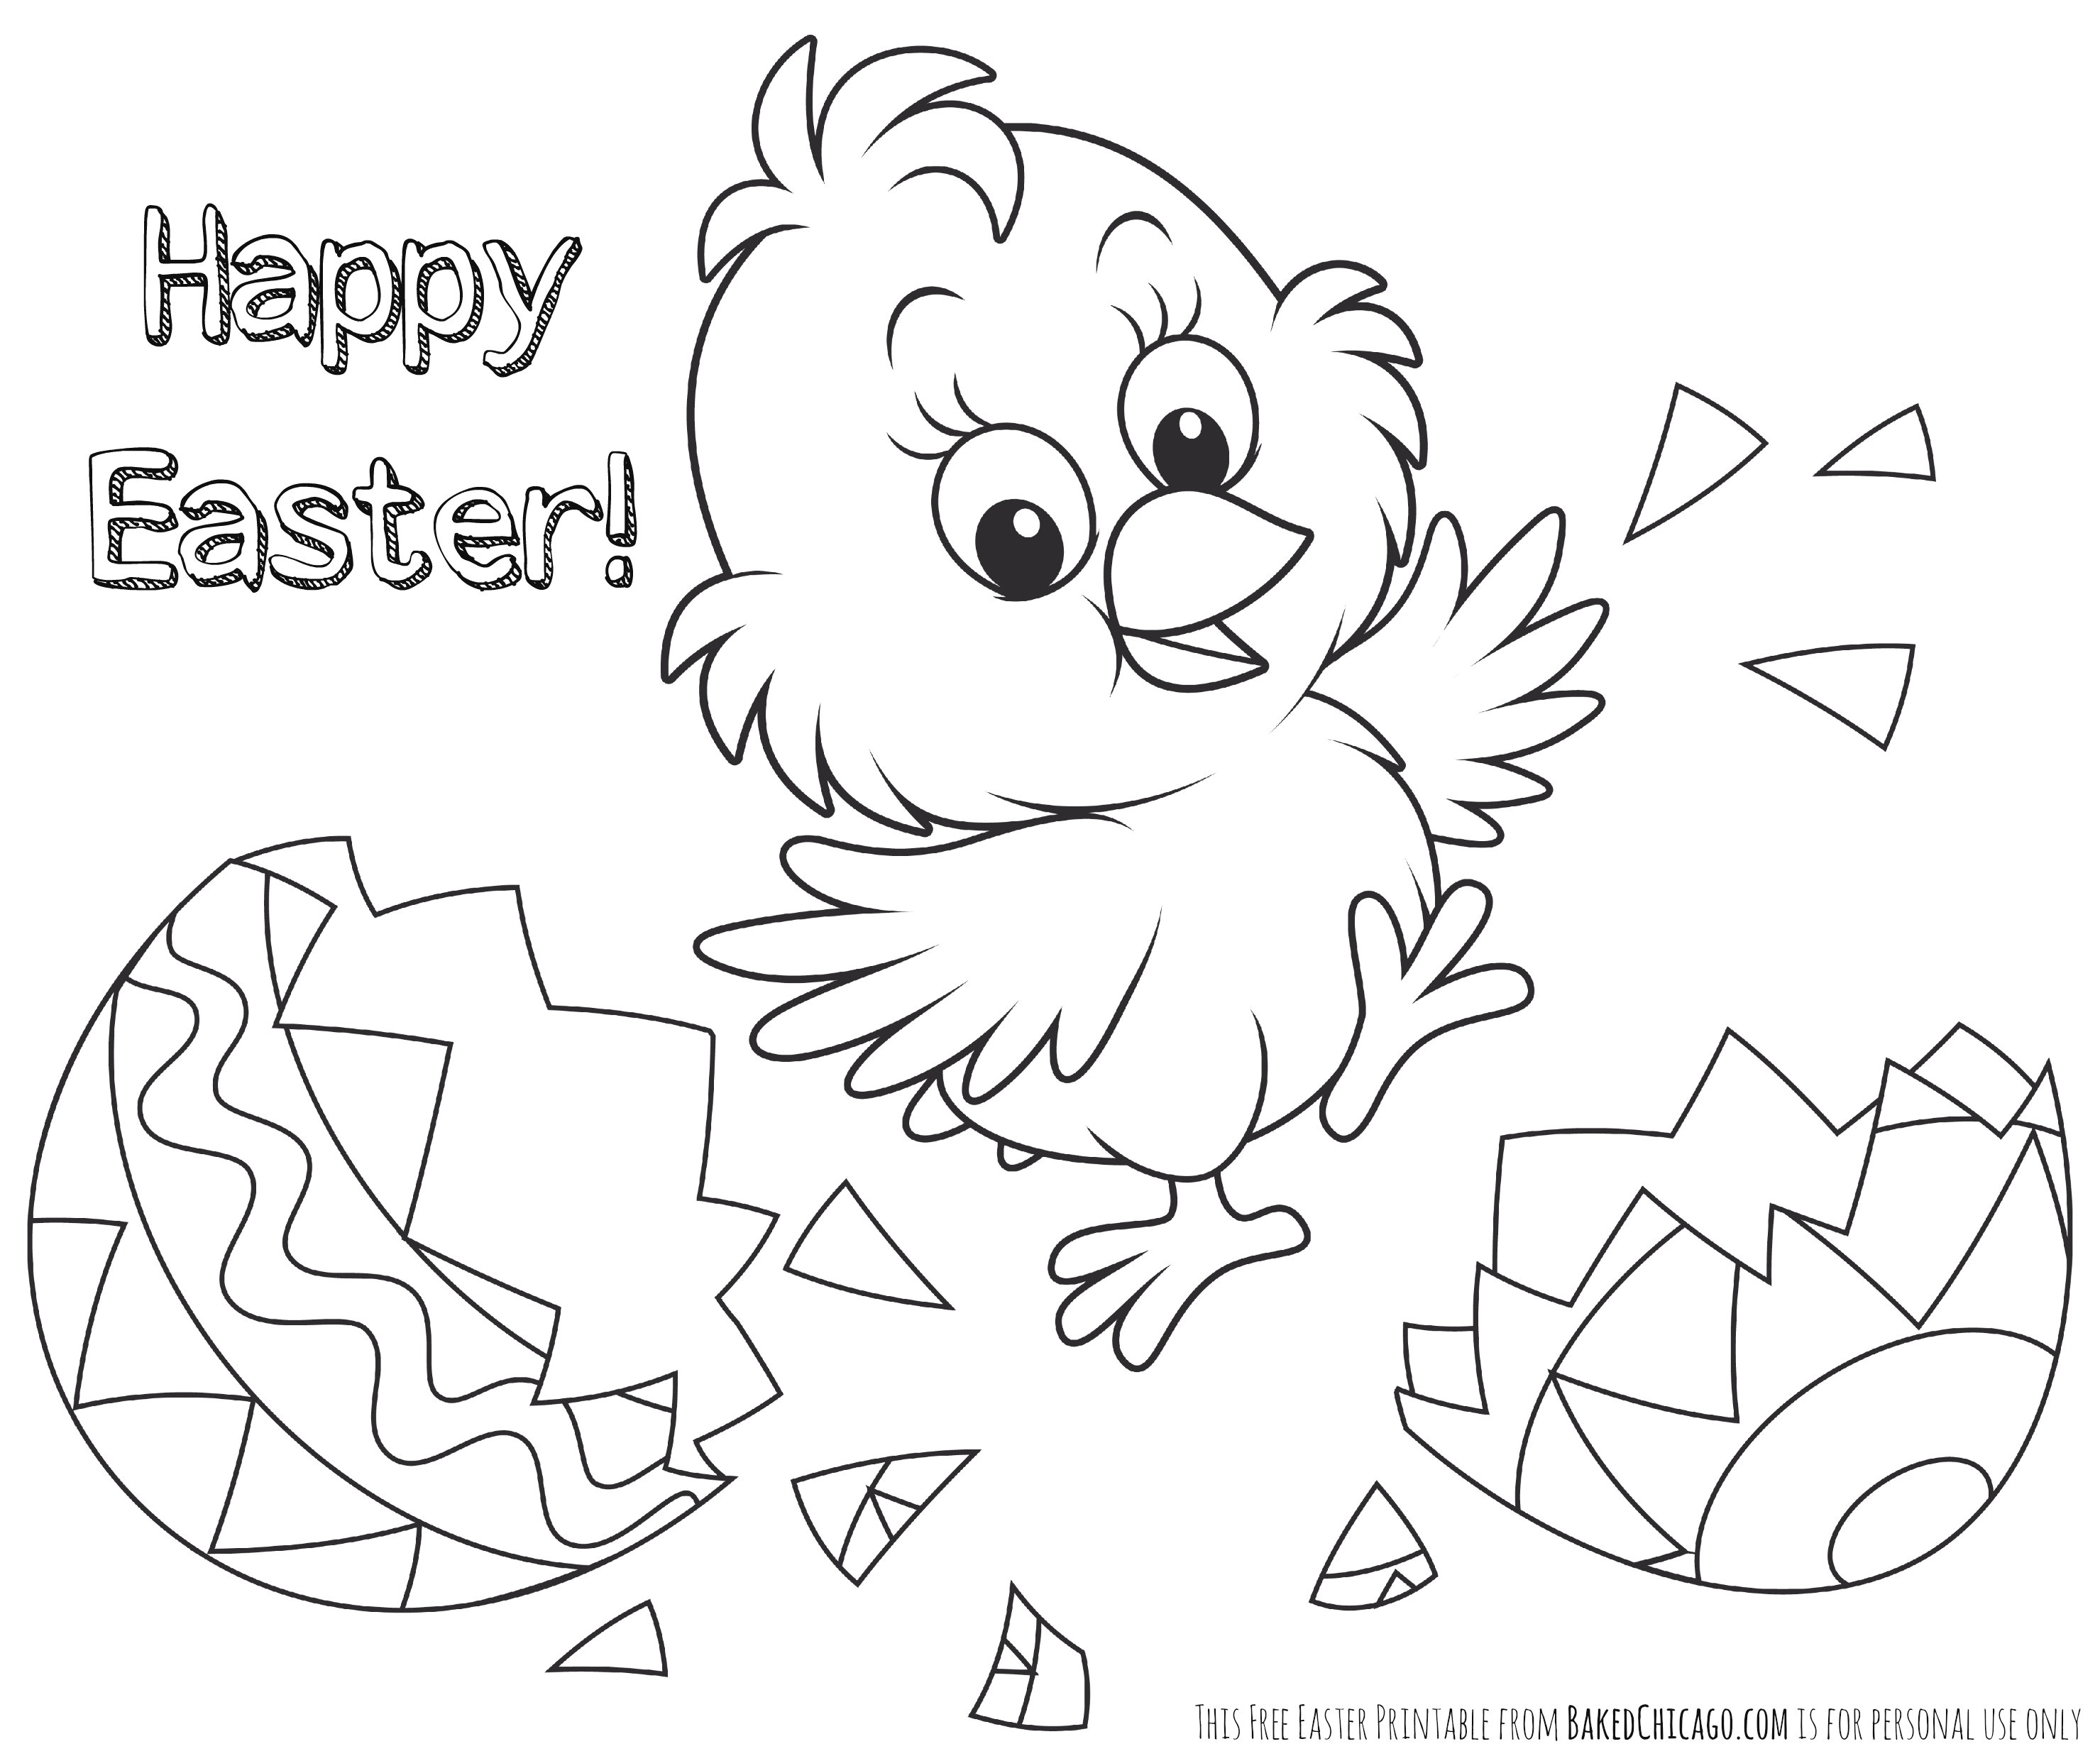 Best Ever Easter Coloring Books : Coloring Pages - Free Easter Color Pages Printable